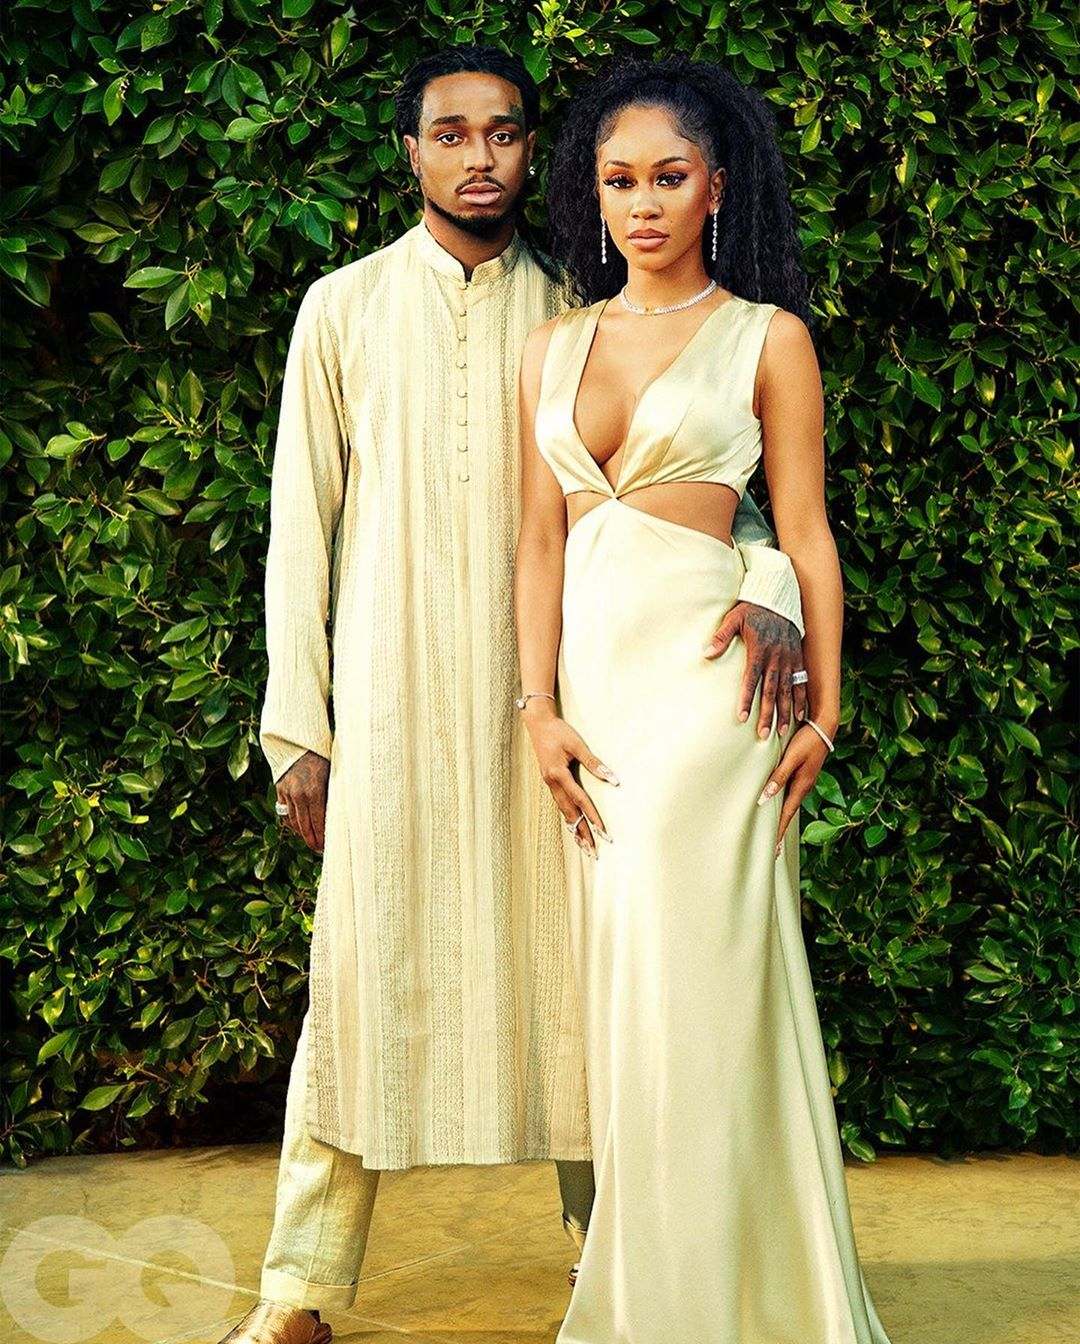 Quavo And His Girlfriend Saweetie Share Their Love Story As They Cover GQ Magazine (Photos)